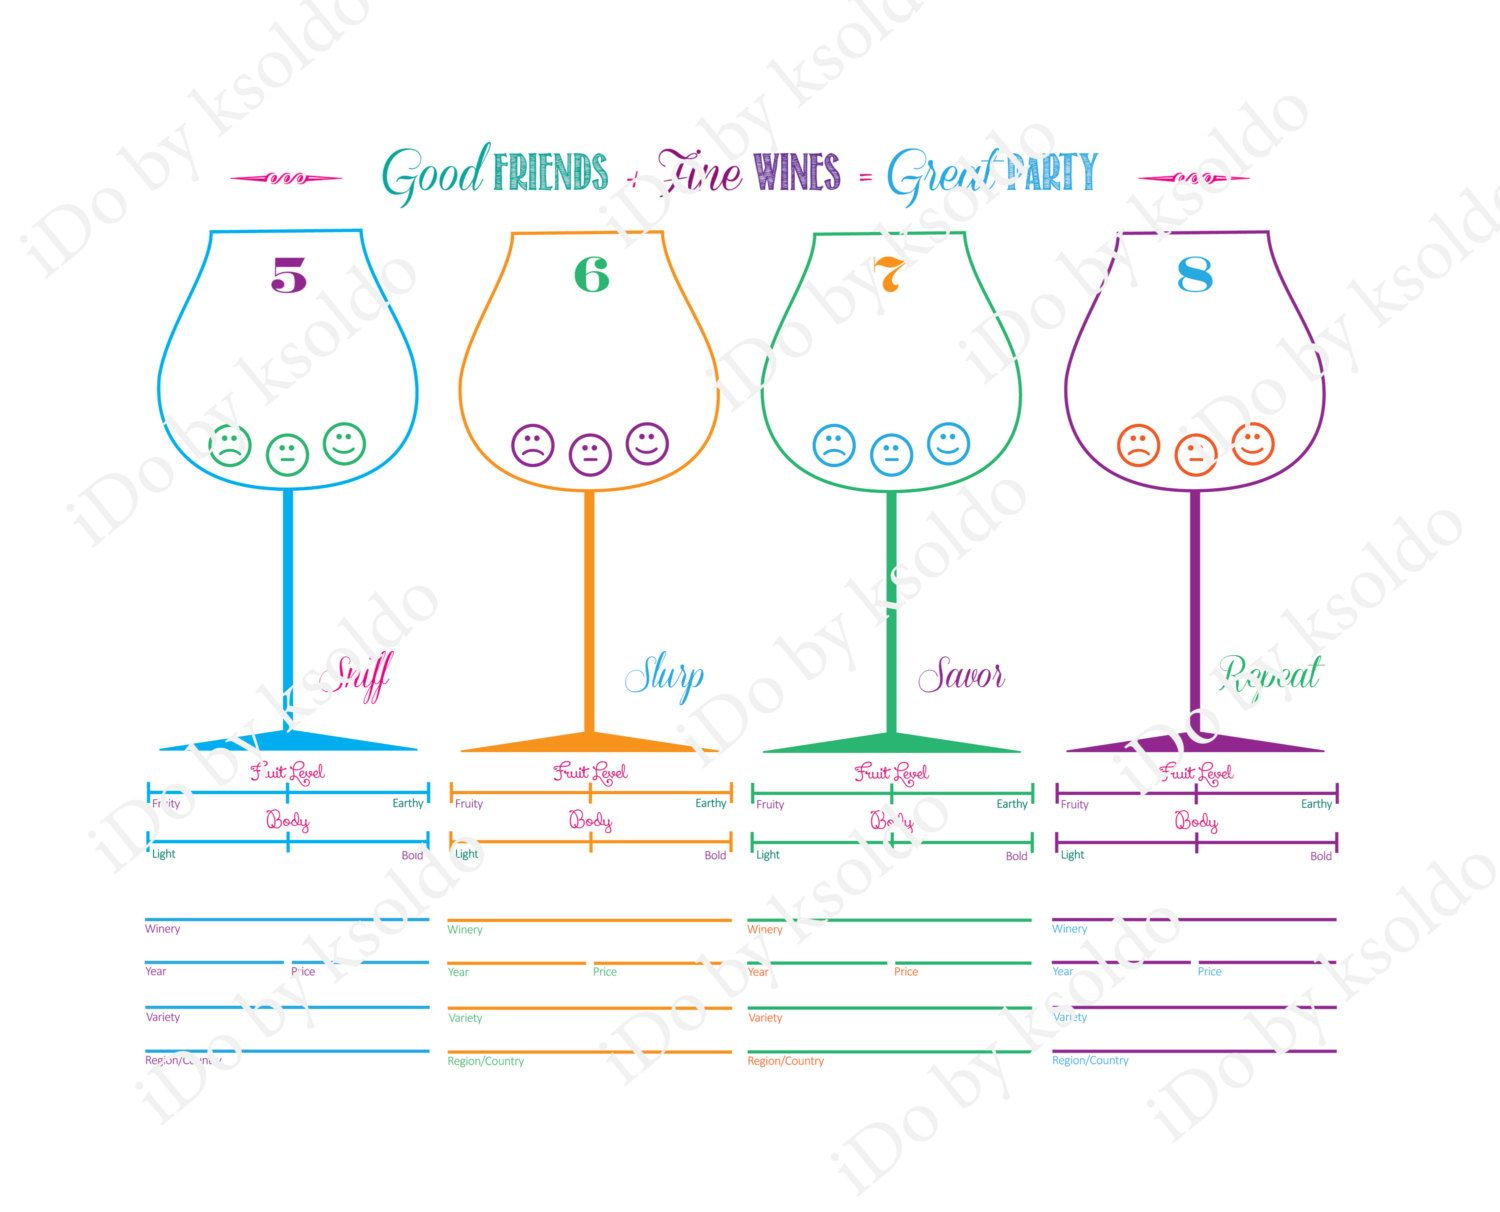 This is an image of Influential Wine Tasting Sheets Printable